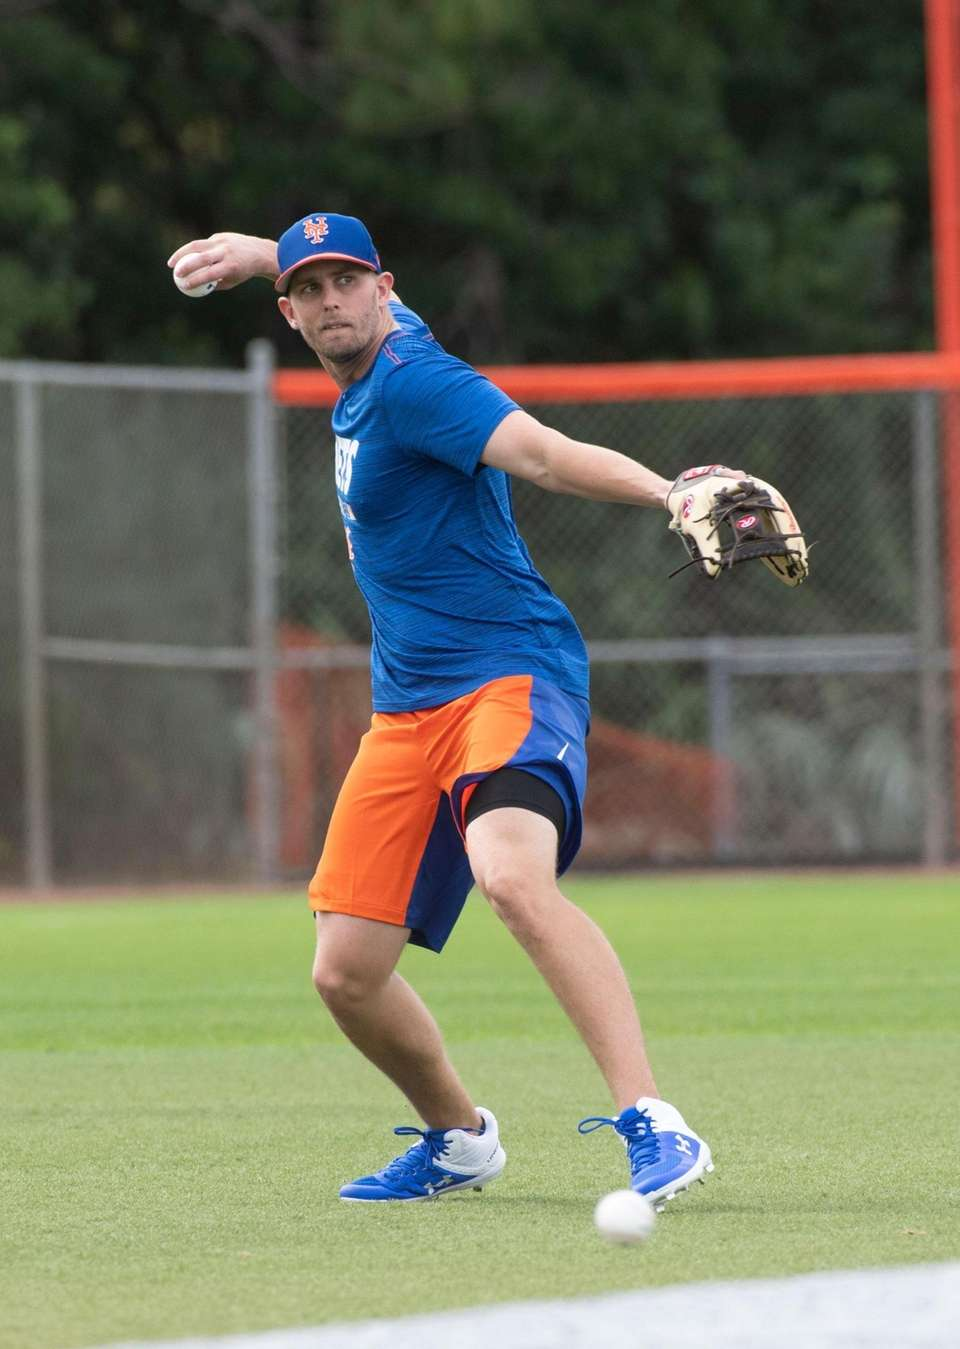 New York Mets player Jeff McNeil during a